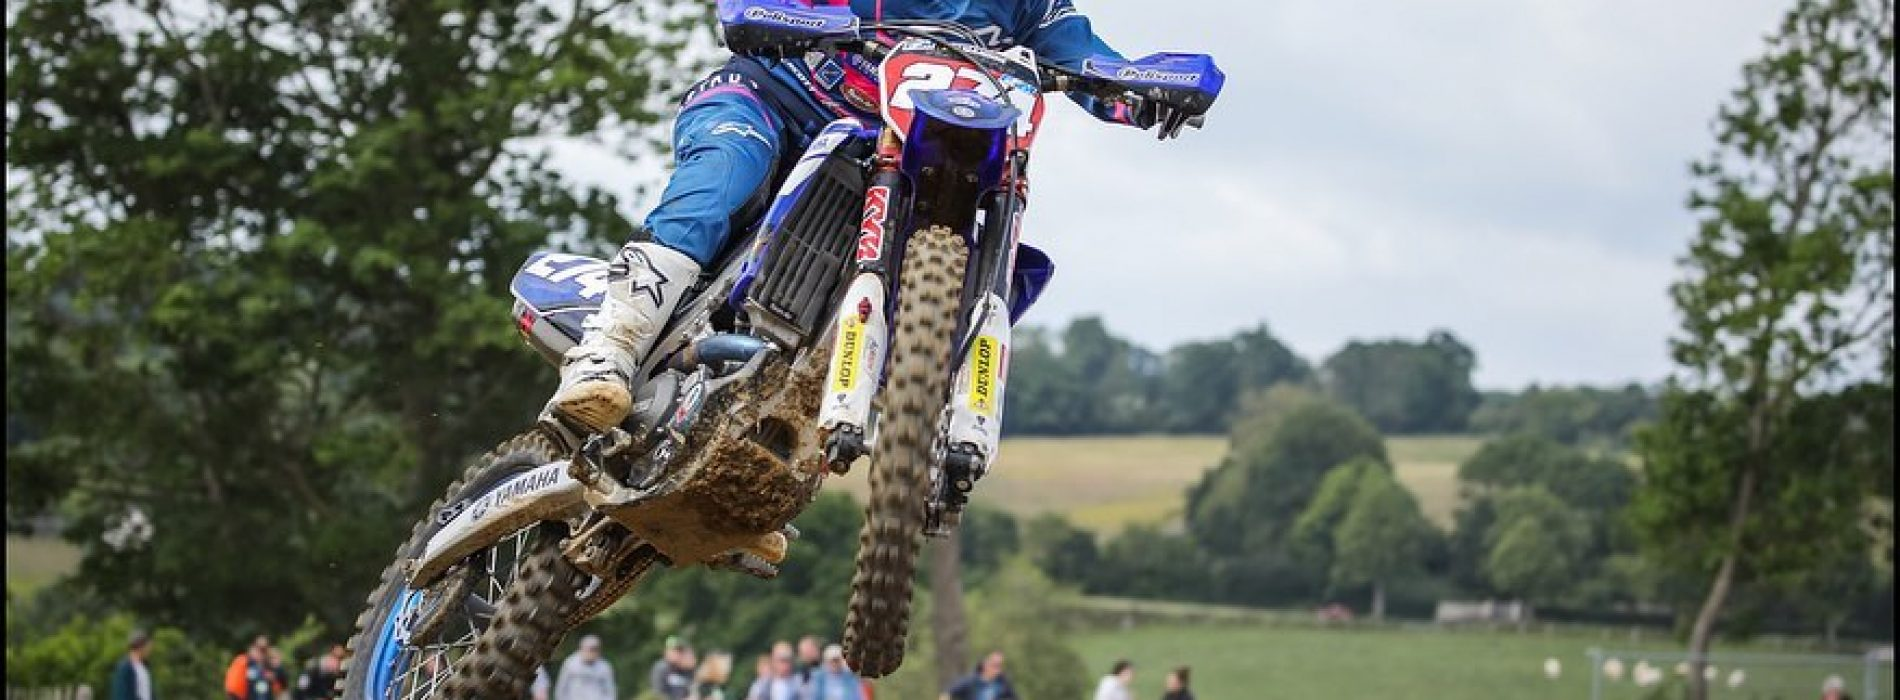 Amandine Verstappen leading Women French MX Championship heading into Round 6 this weekend